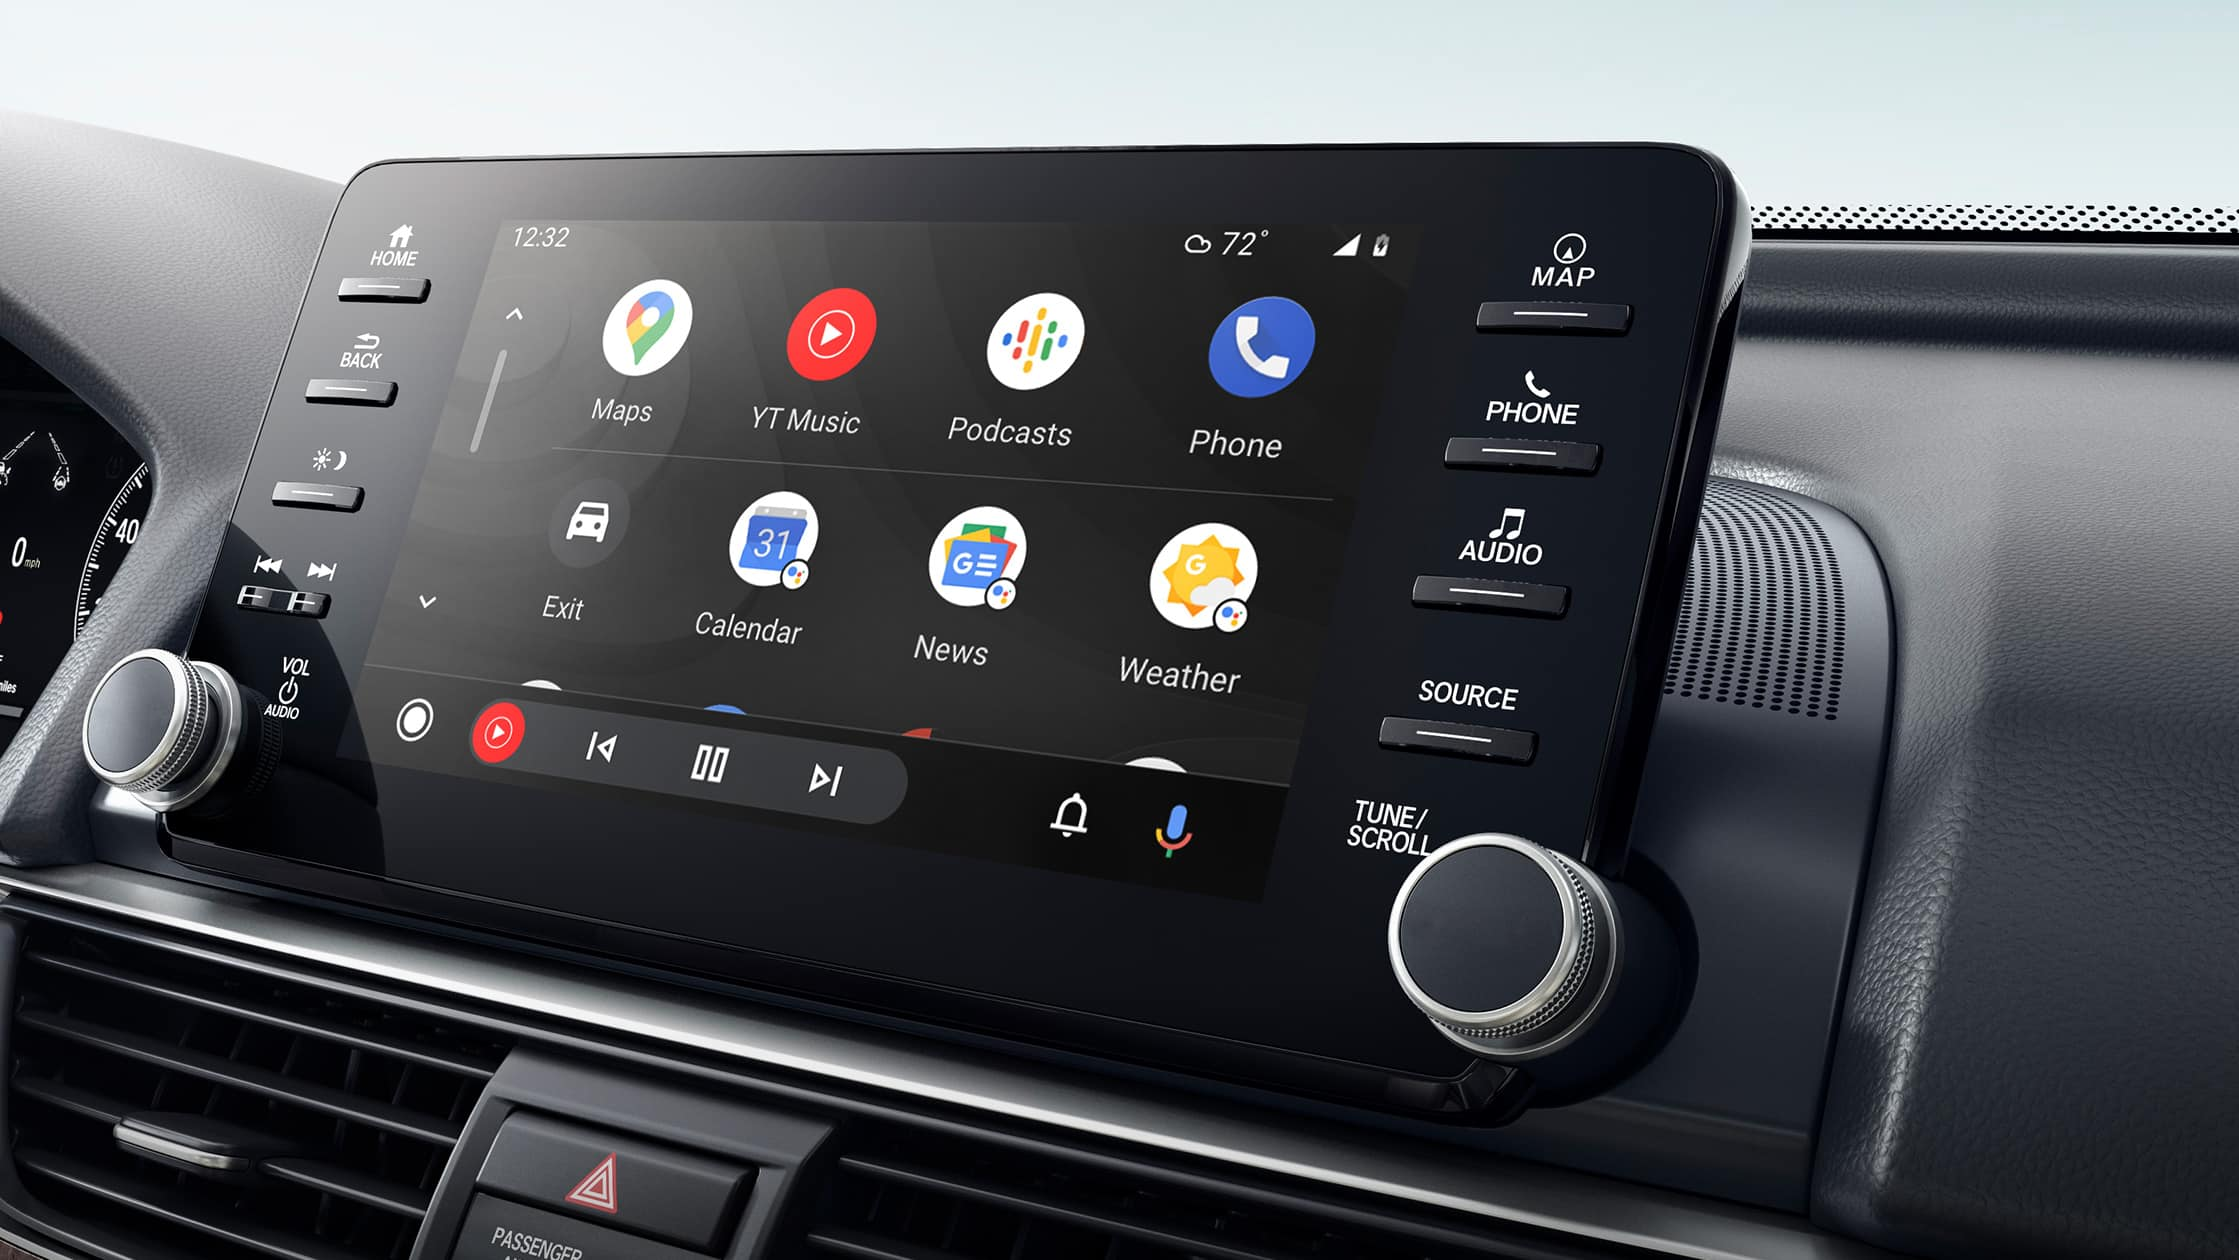 Wireless Android Auto™ integration detail on Display Audio touch-screen in the 2021 Honda Accord Touring 2.0T.